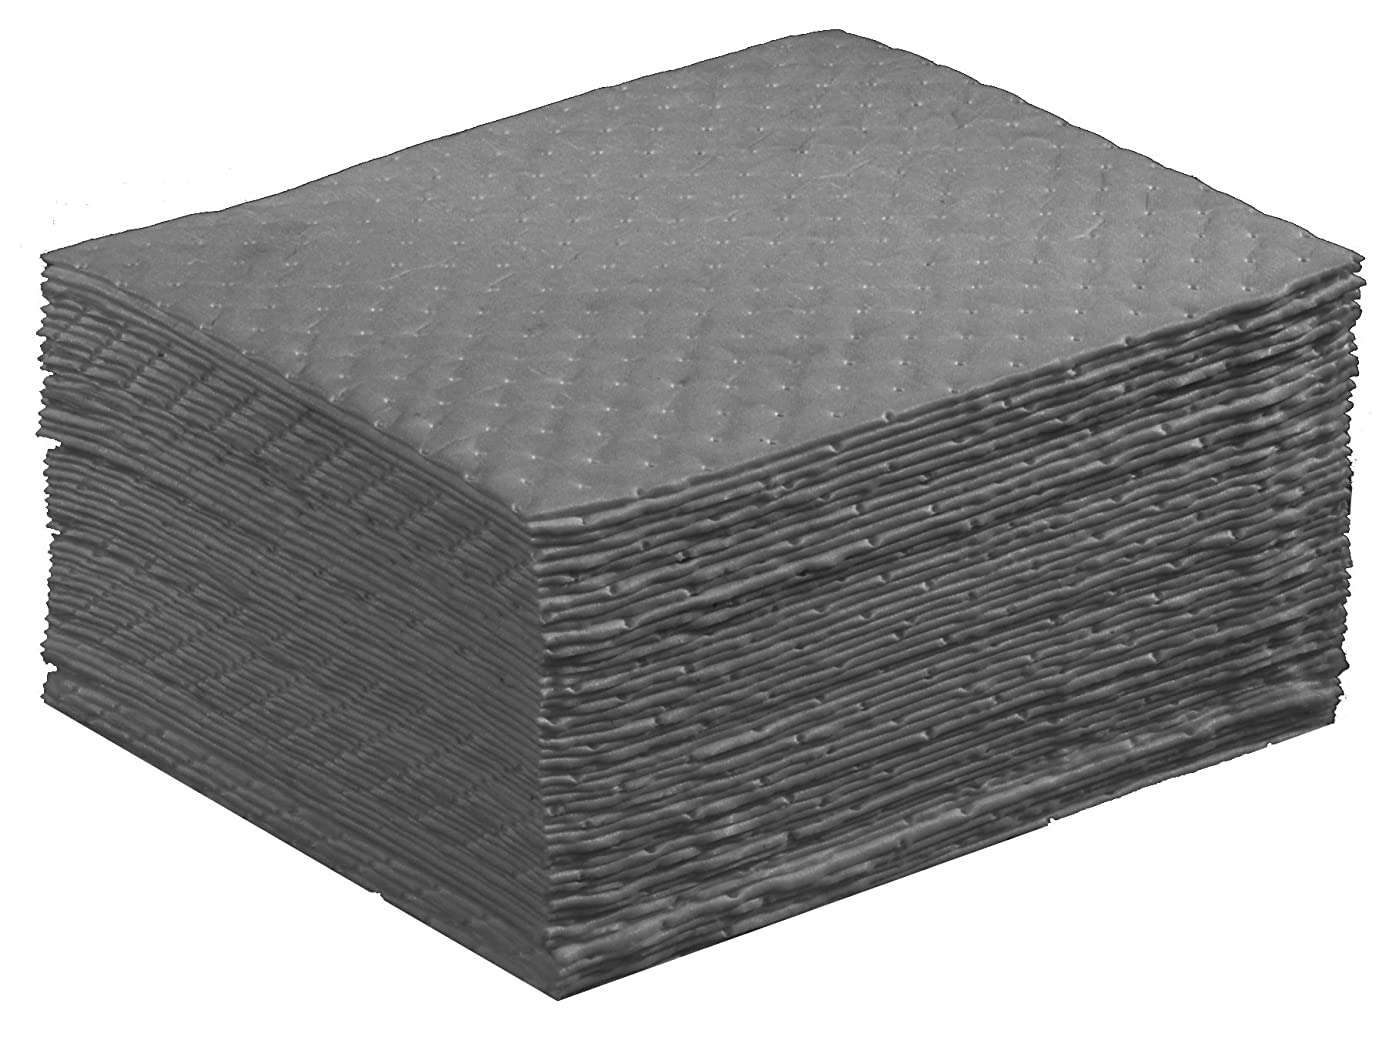 ESP 1AMGPL Airmatrix Polypropylene Heavy Weight Maintenance Universal Absorbent Laminated Pad, 18